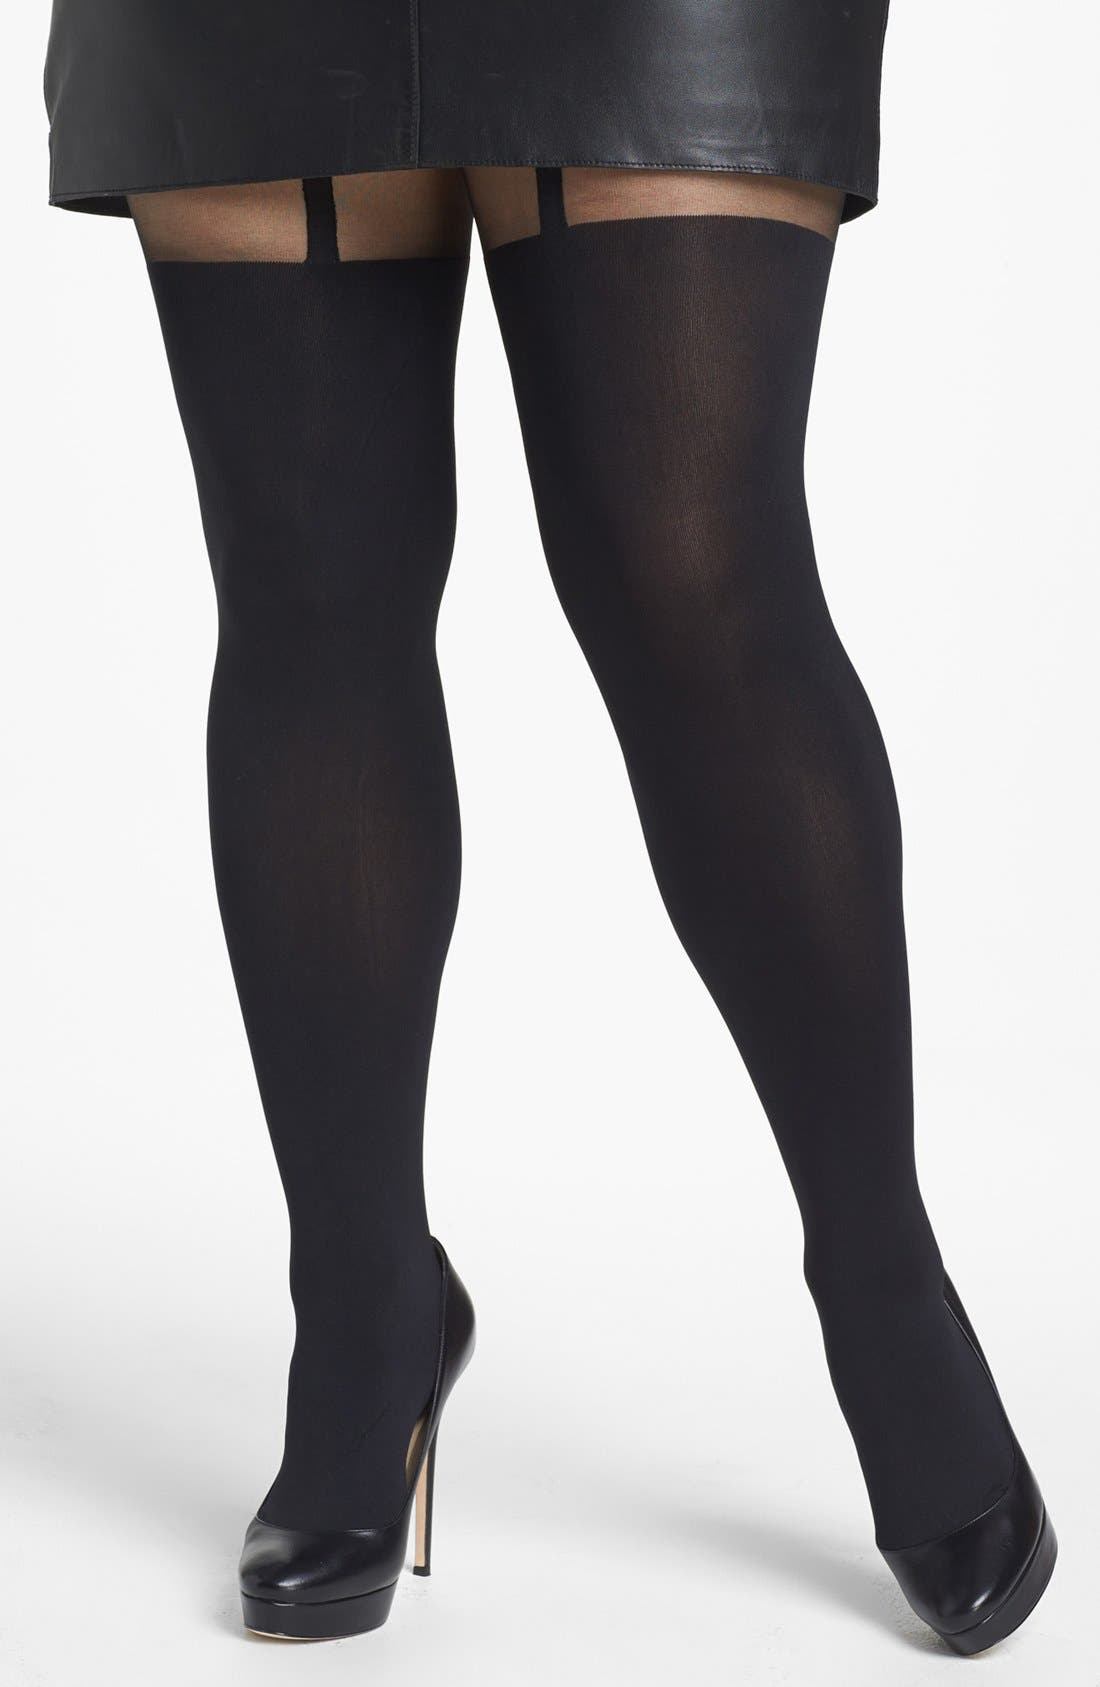 Main Image - Pretty Polly 'Curves - Suspender' Tights (Plus Size)